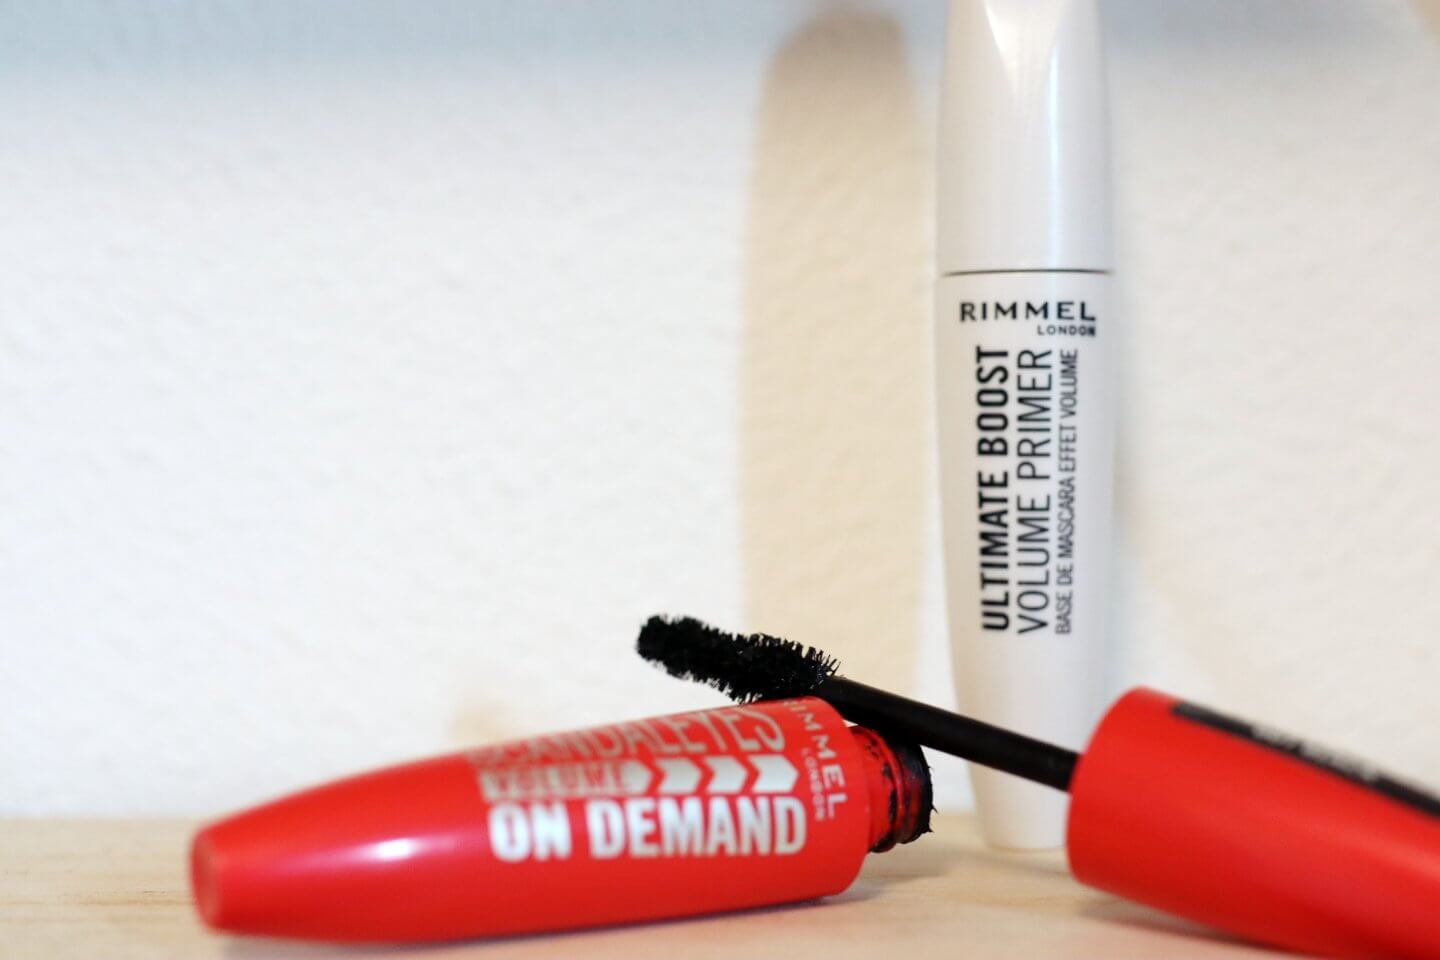 rimmel london mascara - actually anna